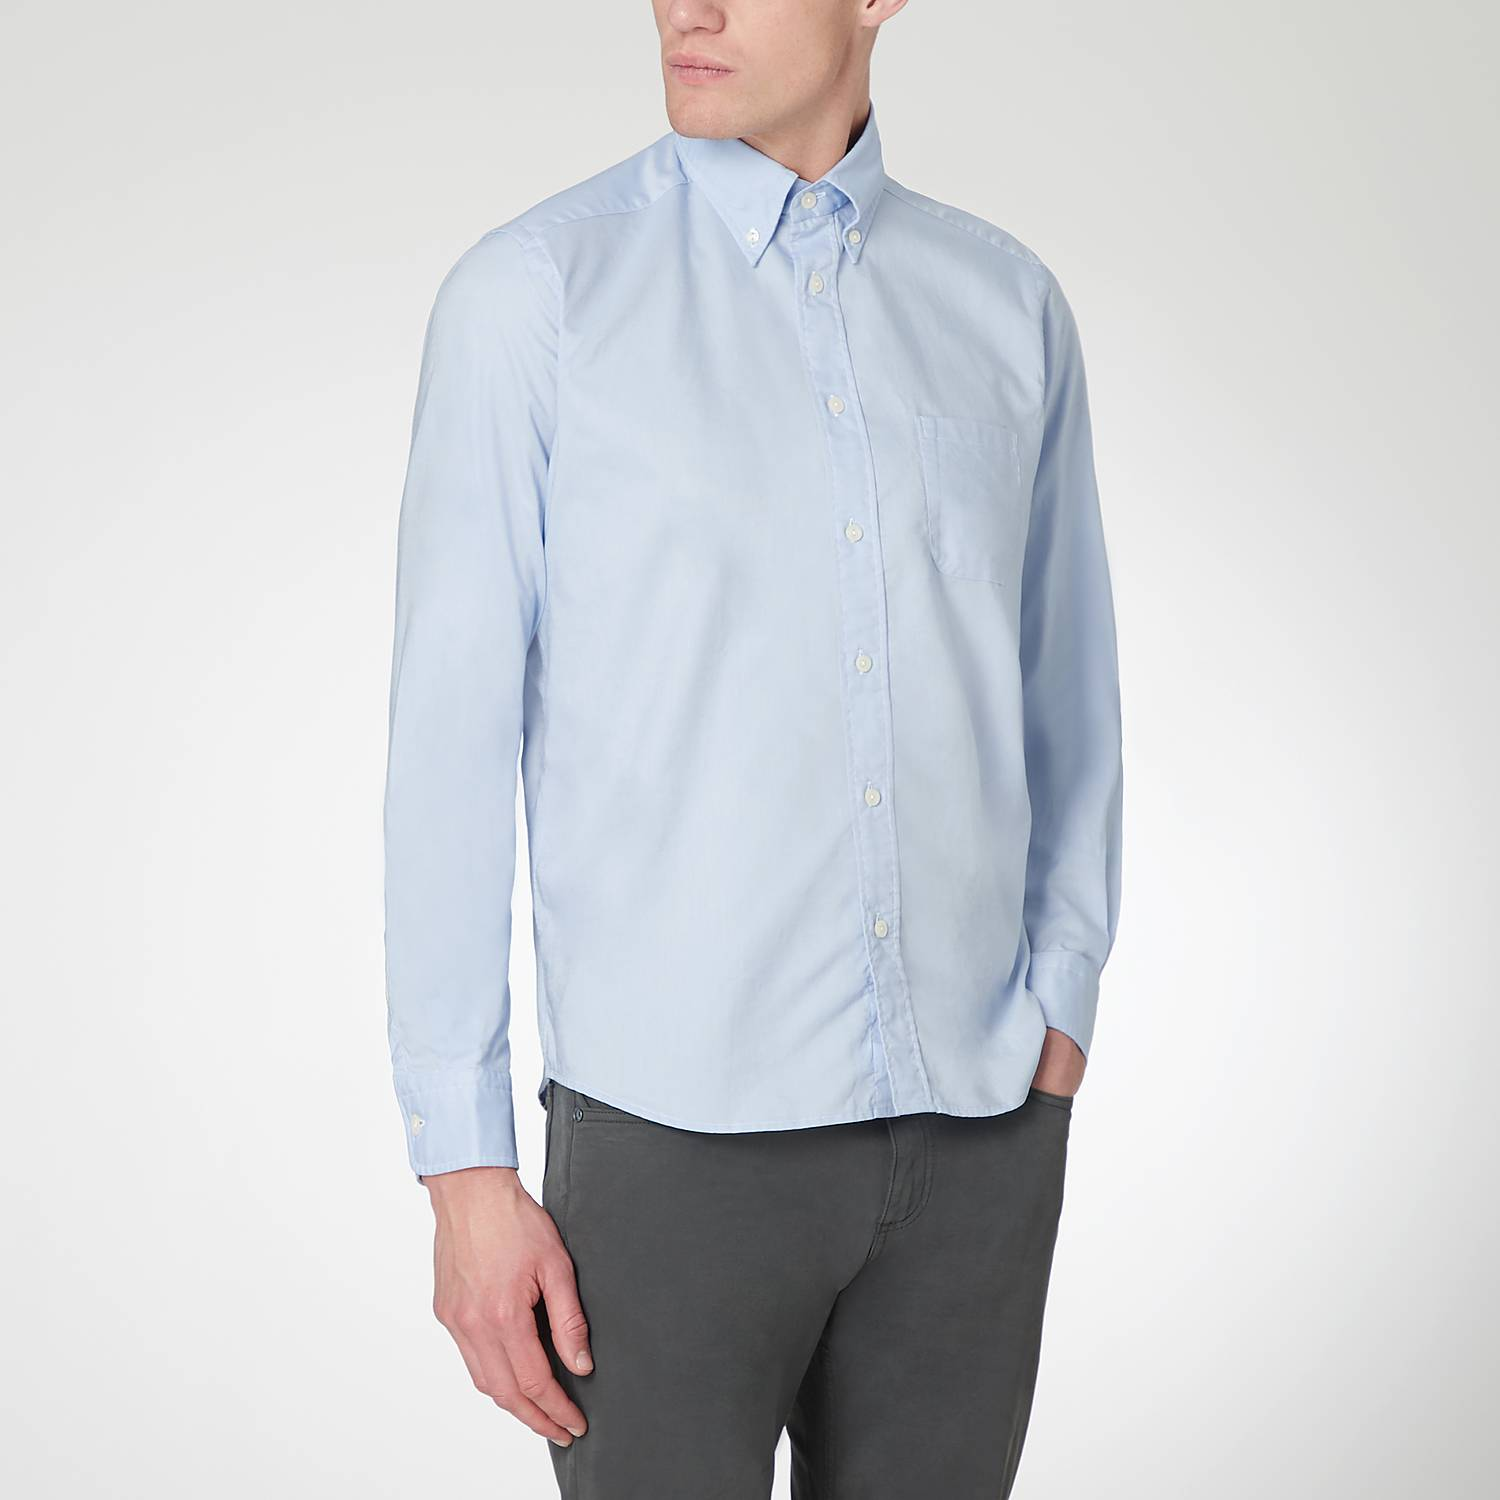 ETON Stretch Oxford Shirt